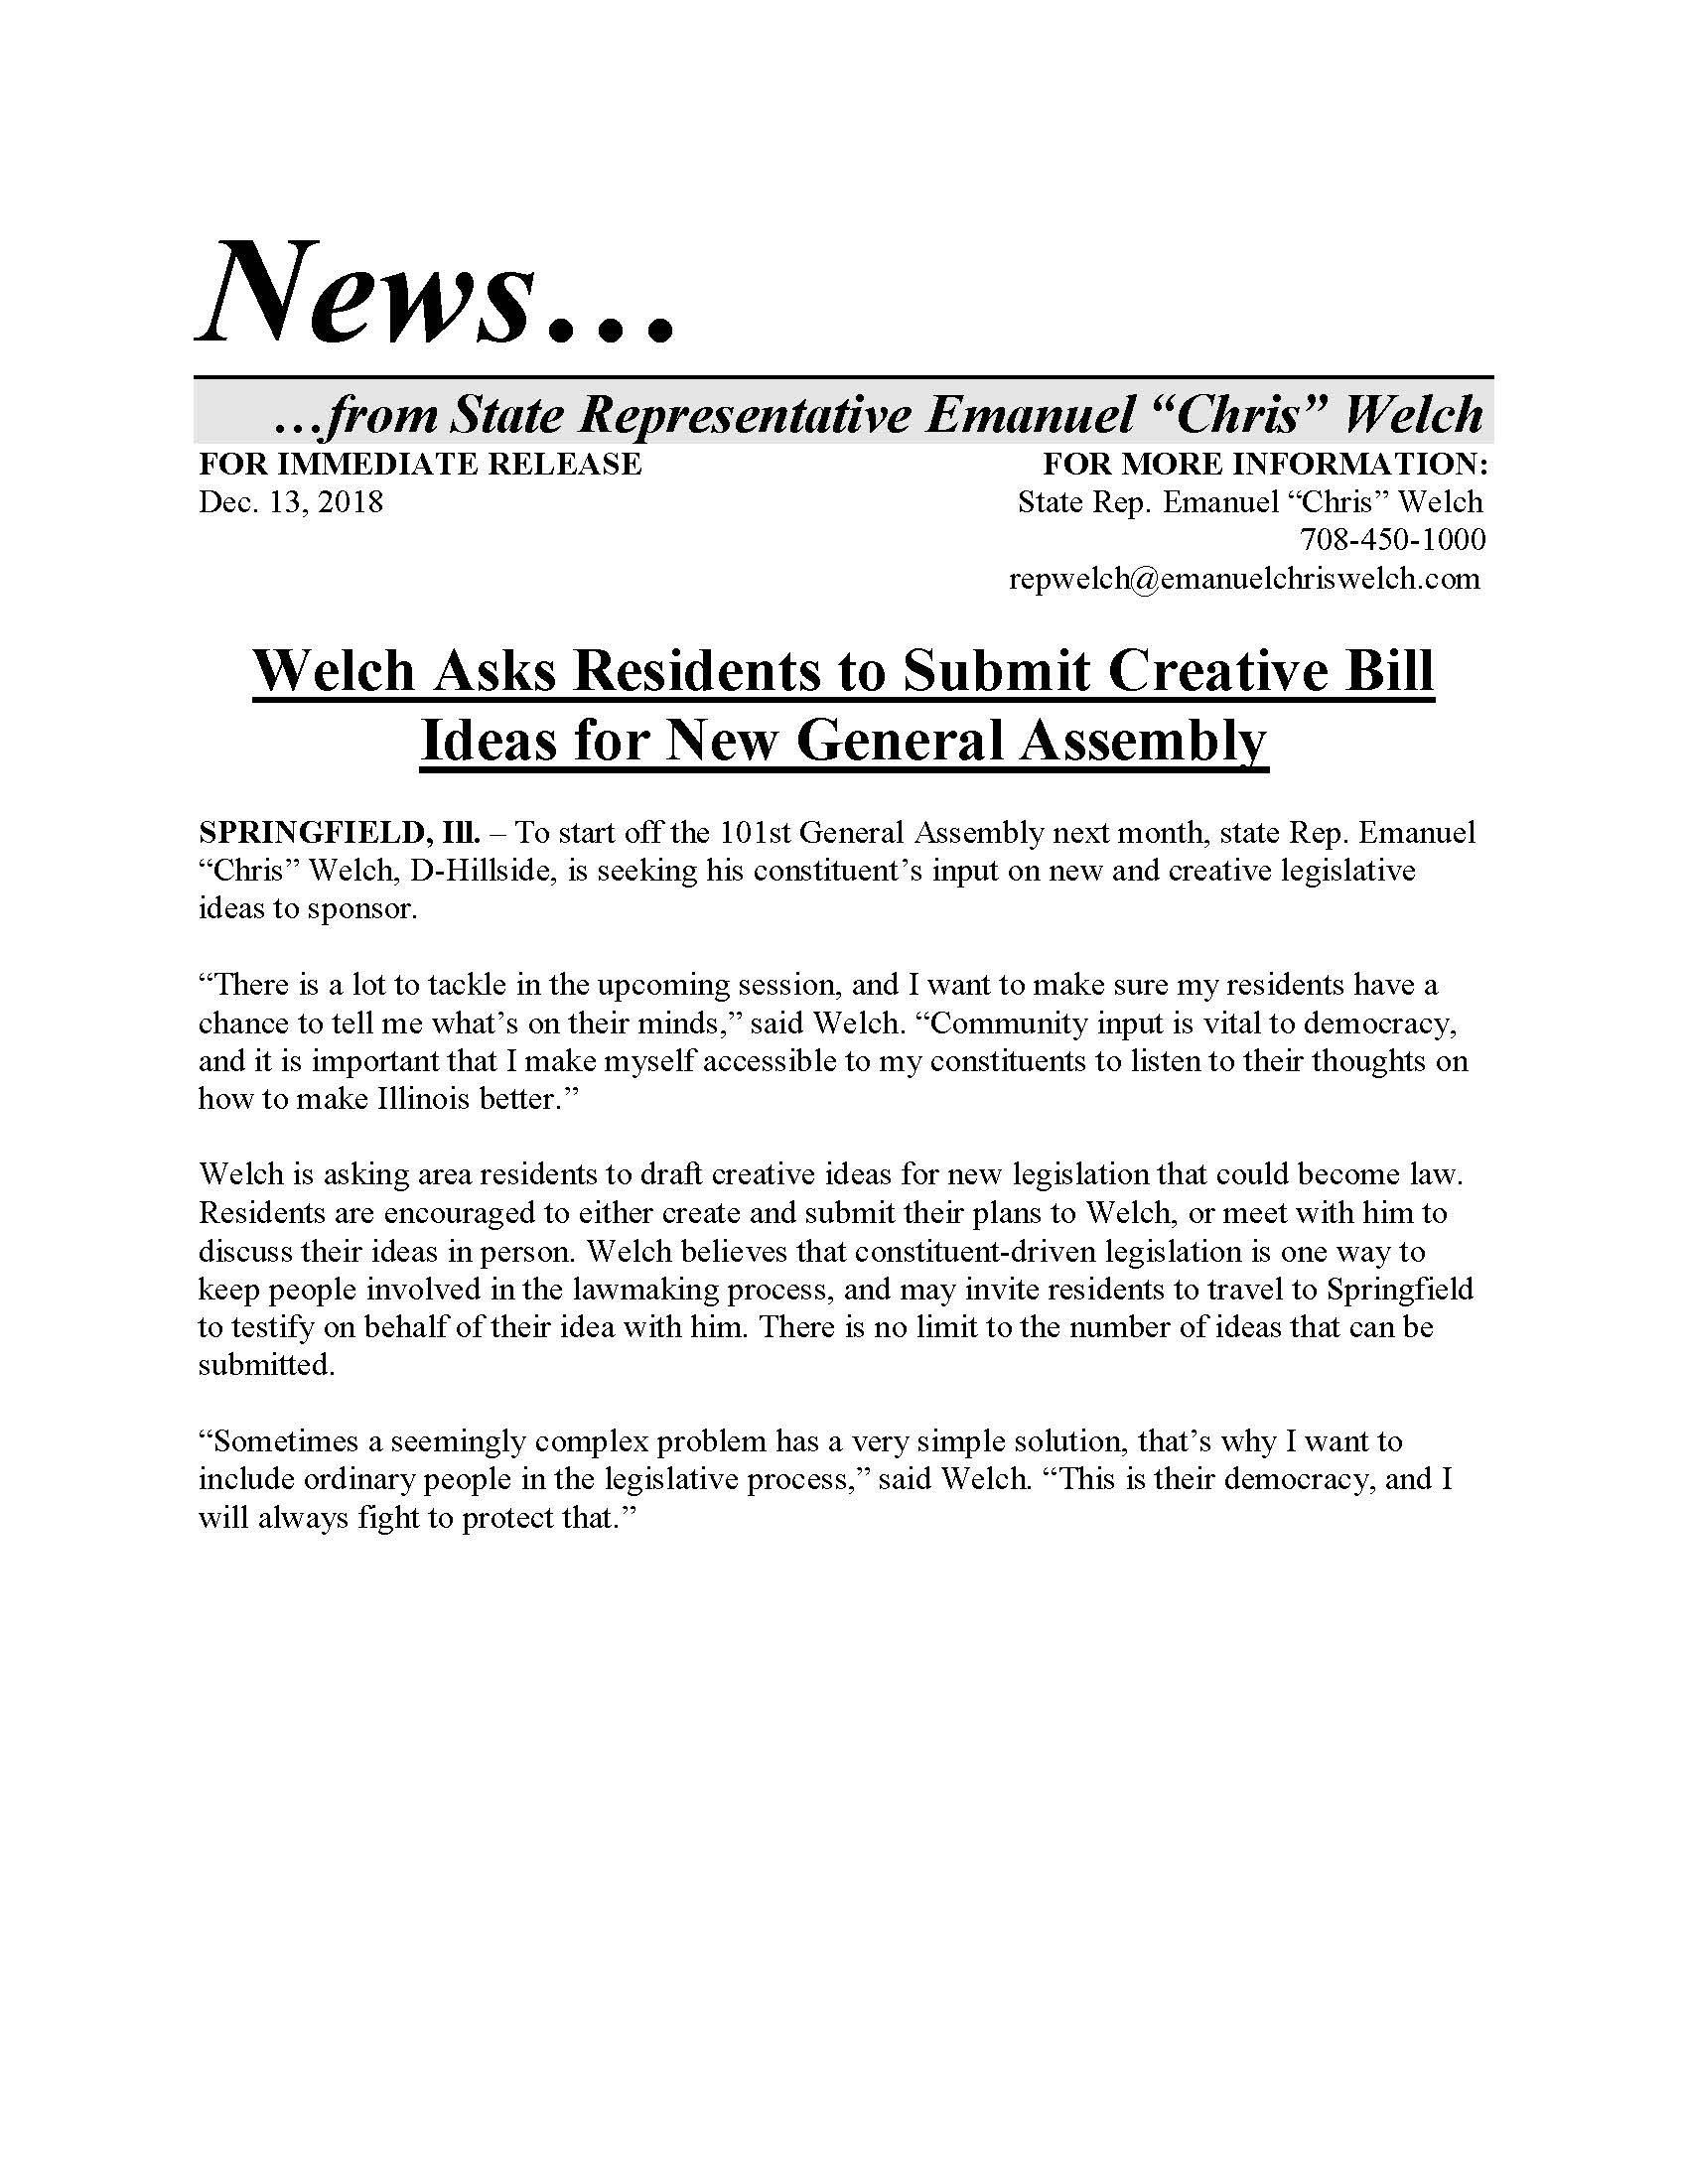 Welch Asks Residents to Submit Creative Bill Ideas for New General Assembly  (December 13, 2018)